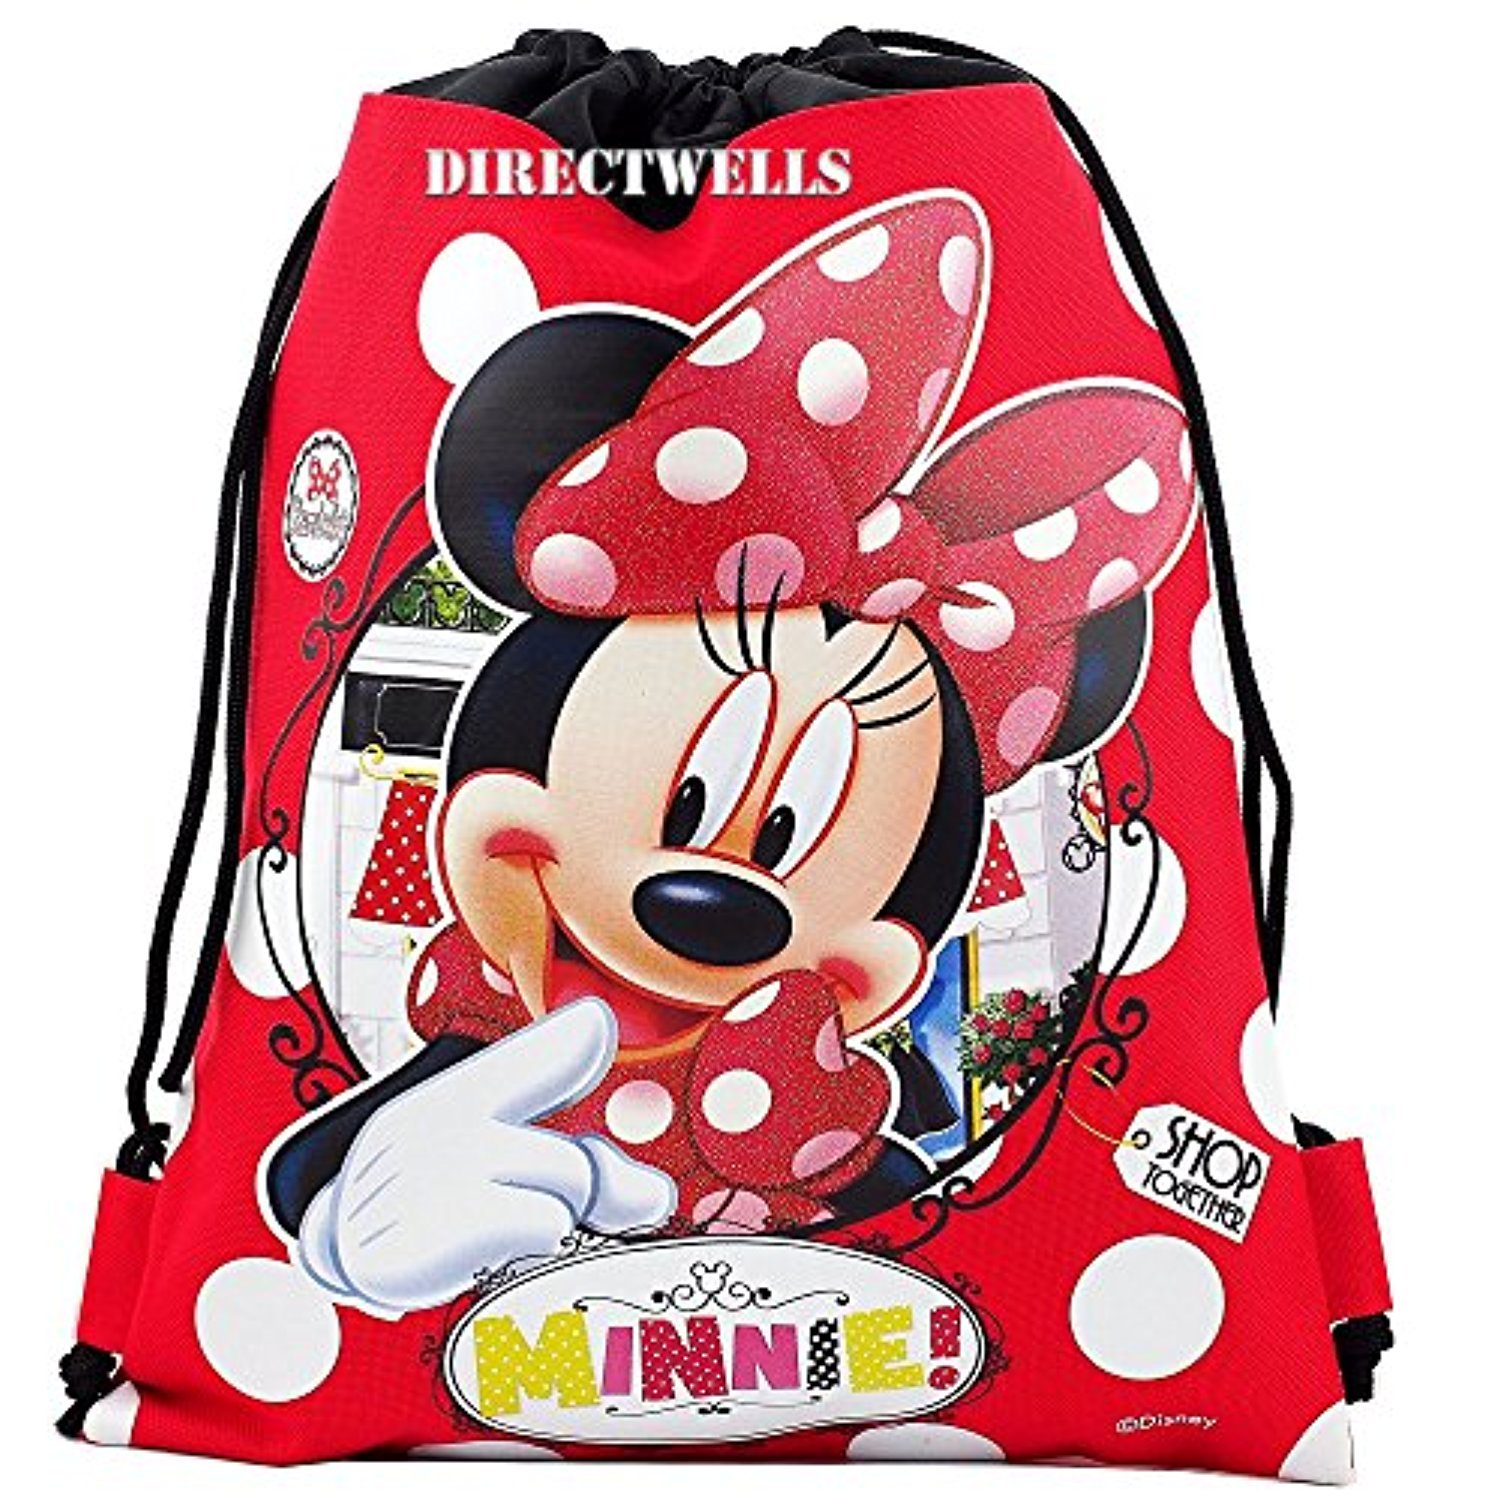 Disney Authentic Licensed Drawstring Backpack Image 3